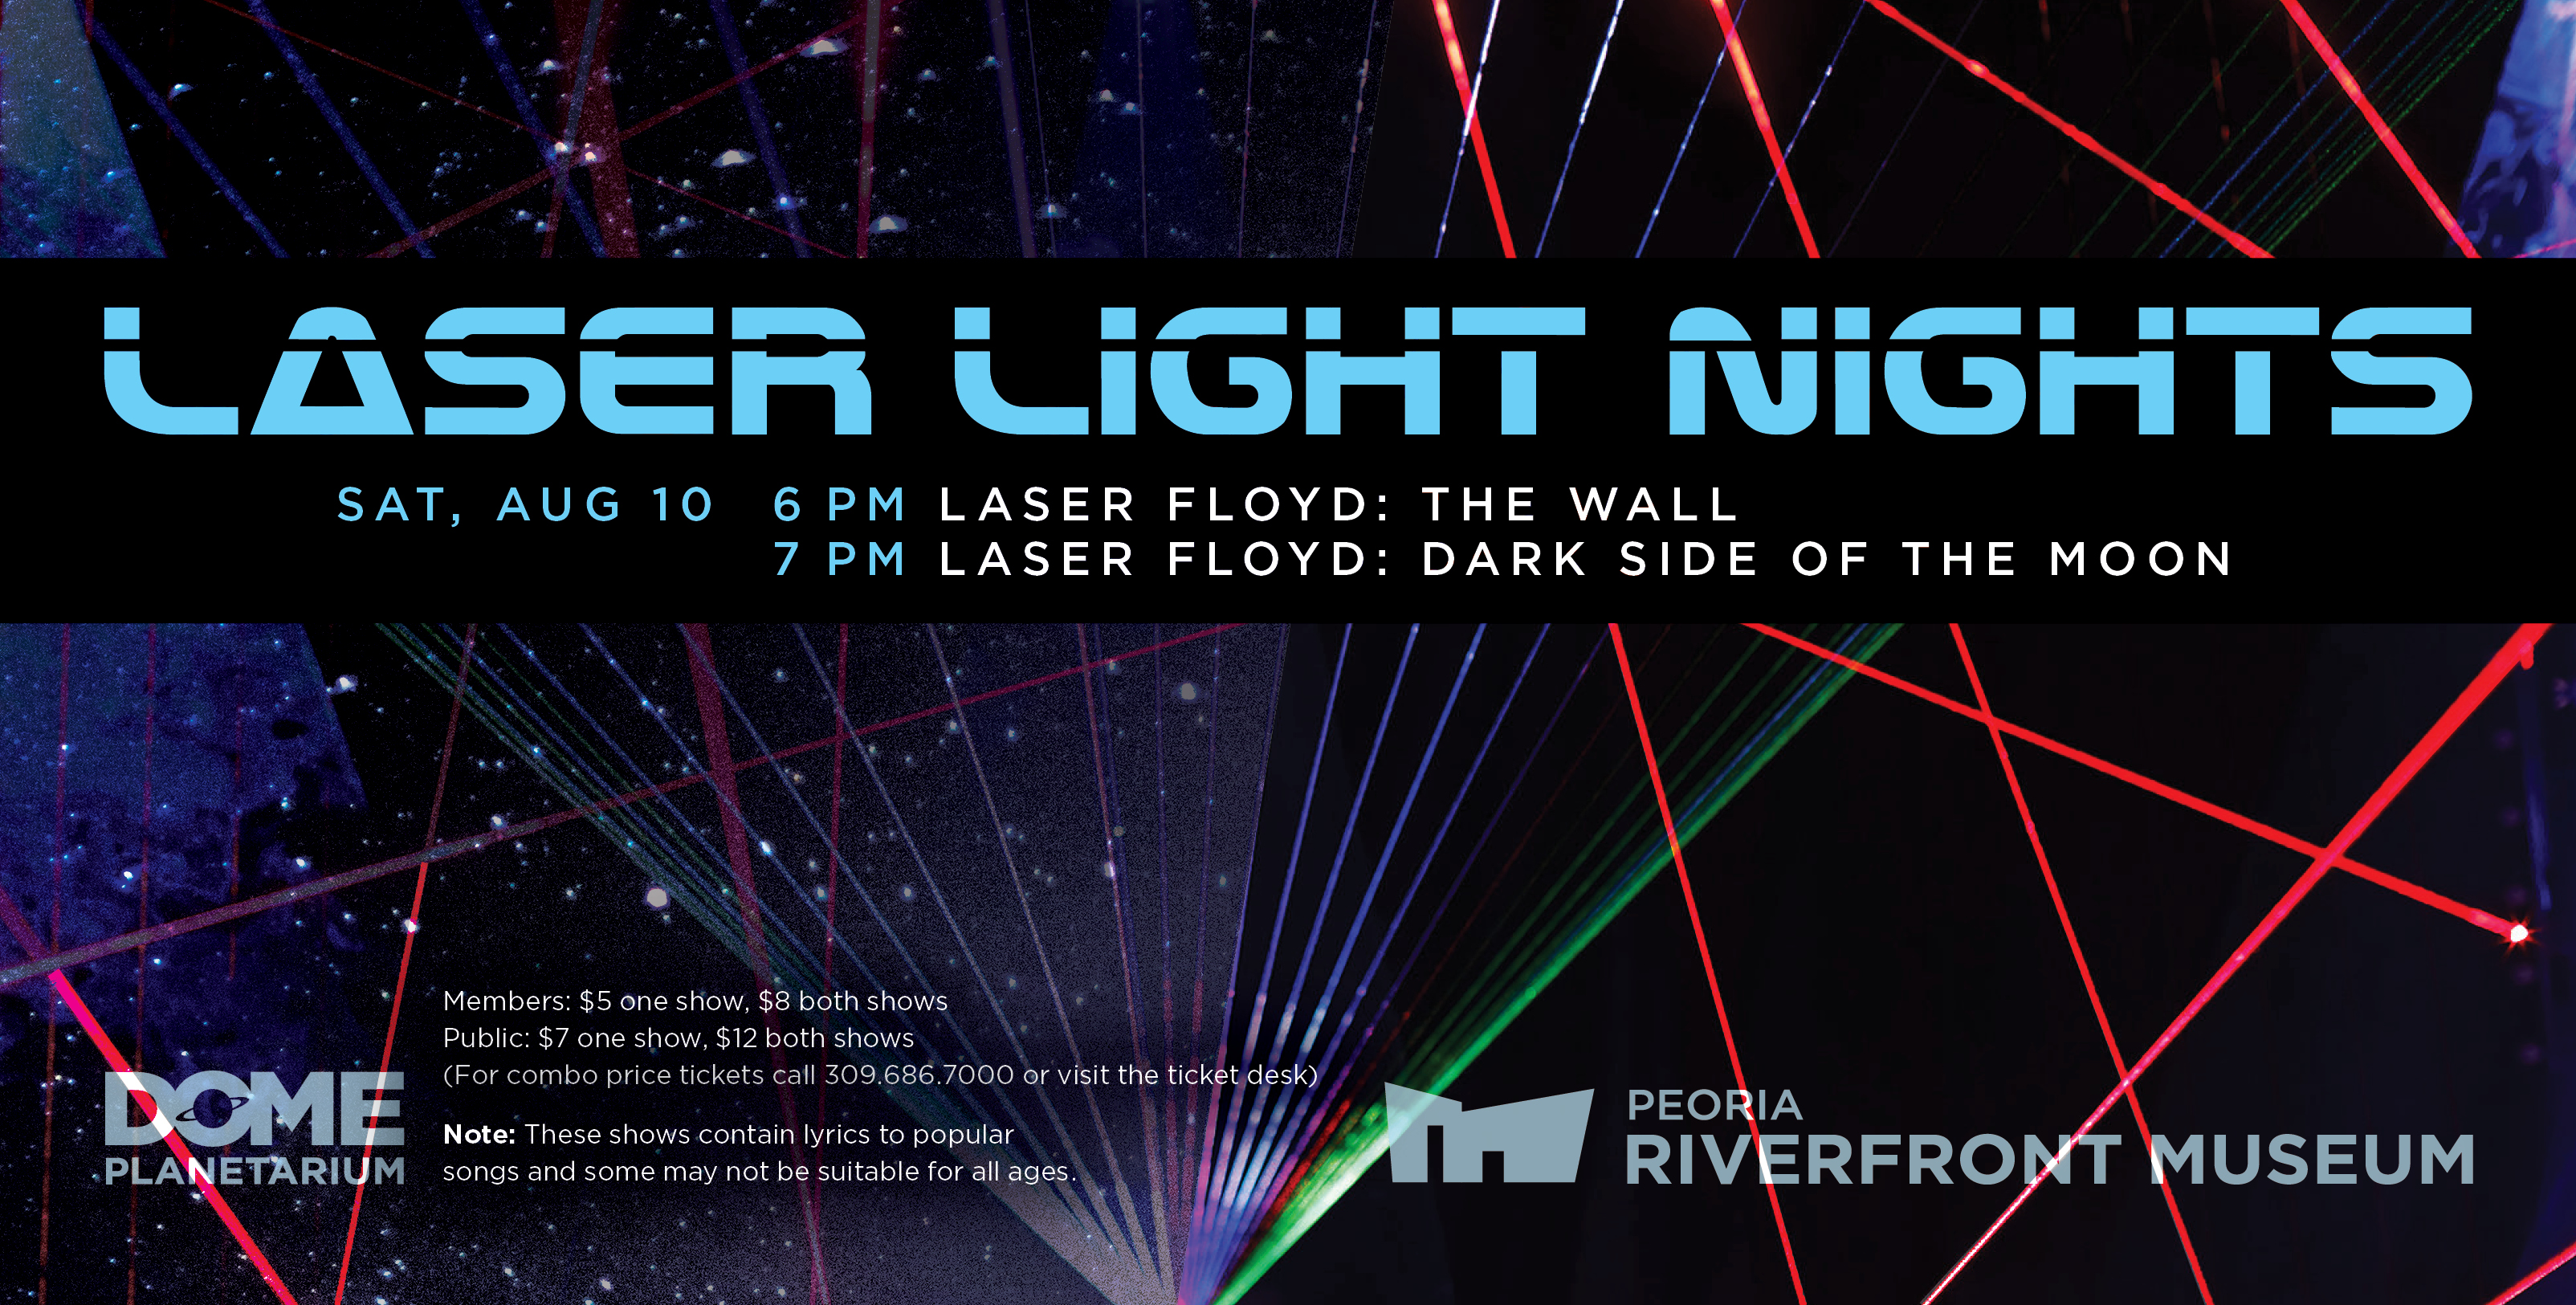 Programs Laser Lights 8.10.19